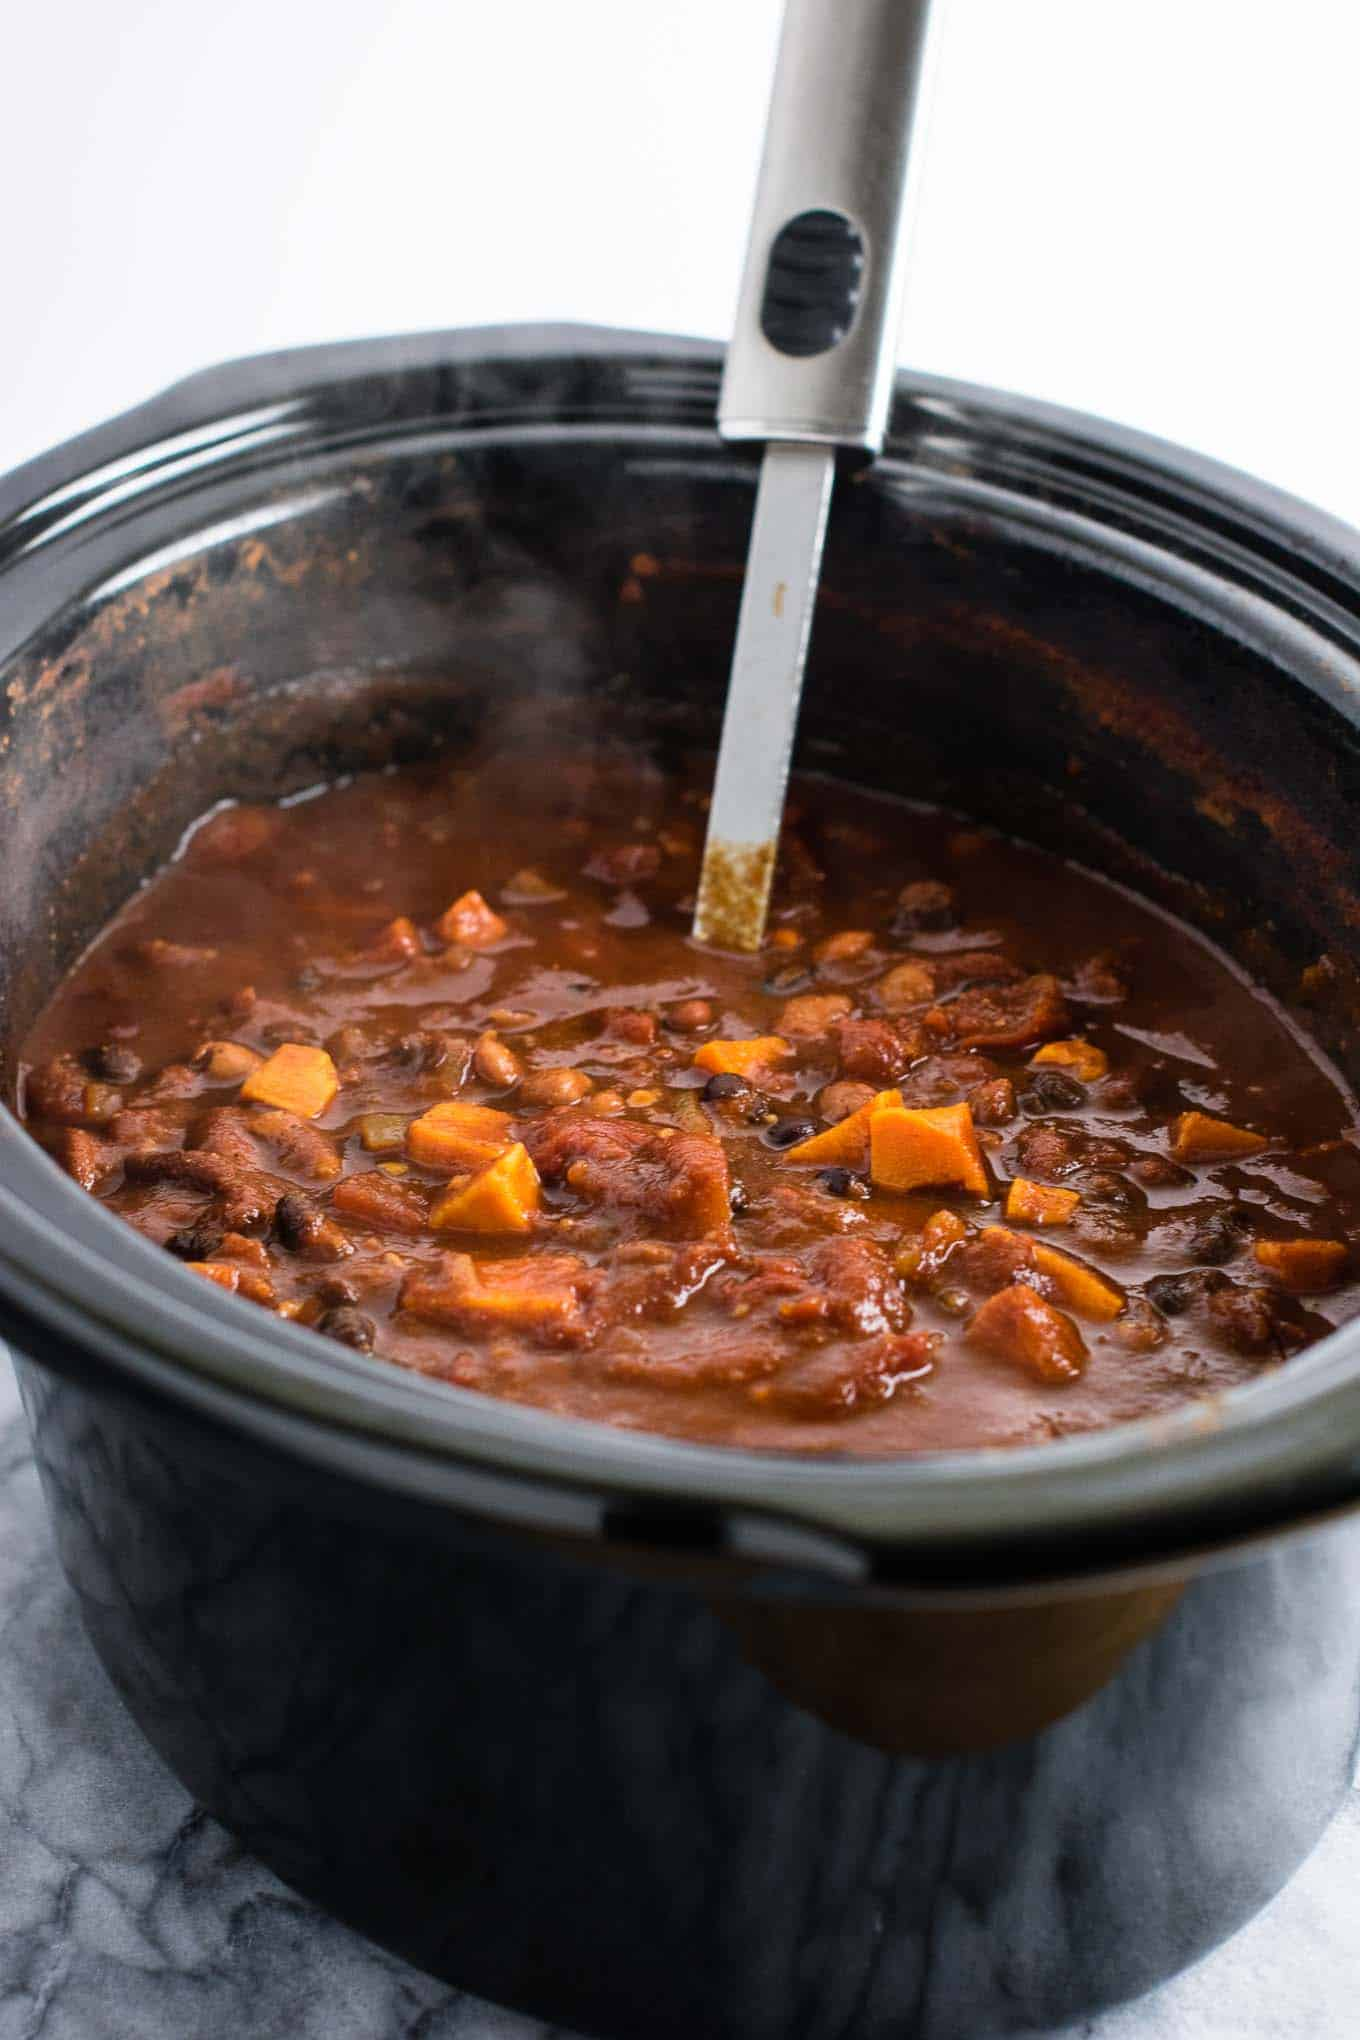 This slow cooker vegetarian sweet potato chili takes just 10 minutes to prep! #vegetarian #chili #sweetpotatochili #meatless #dinner #slowcooker #crockpot